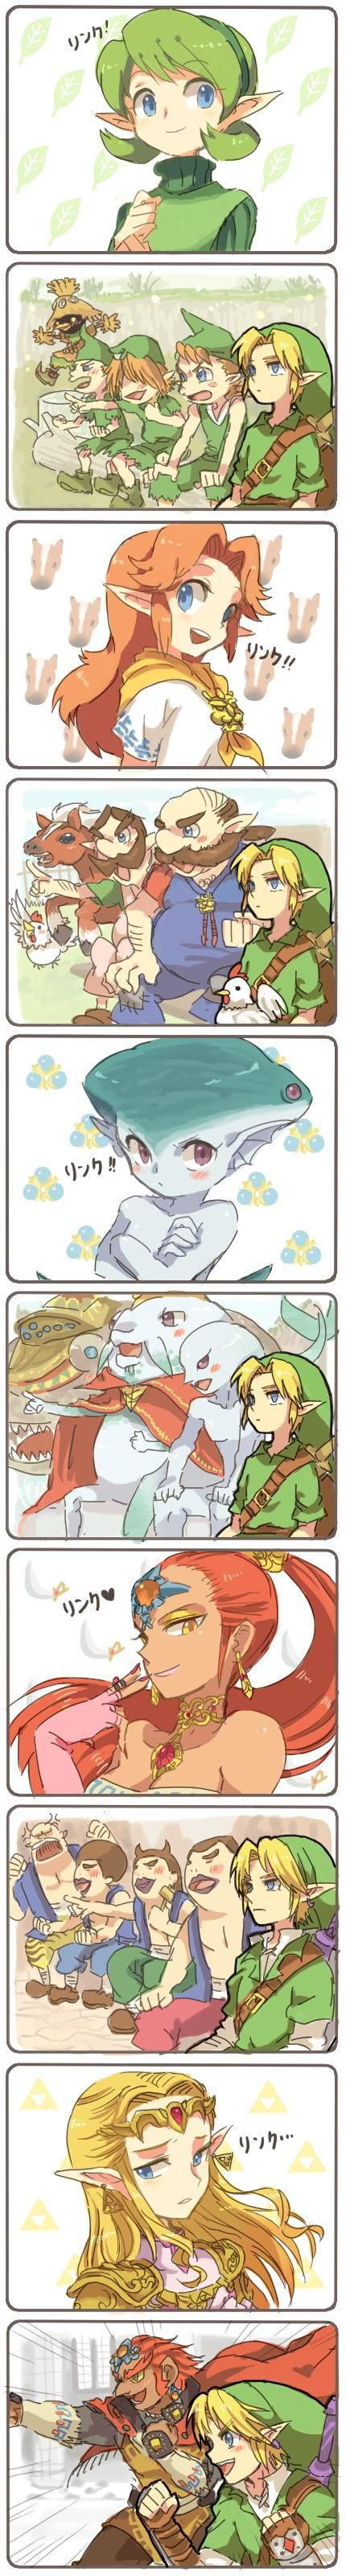 Just a Zelda thing